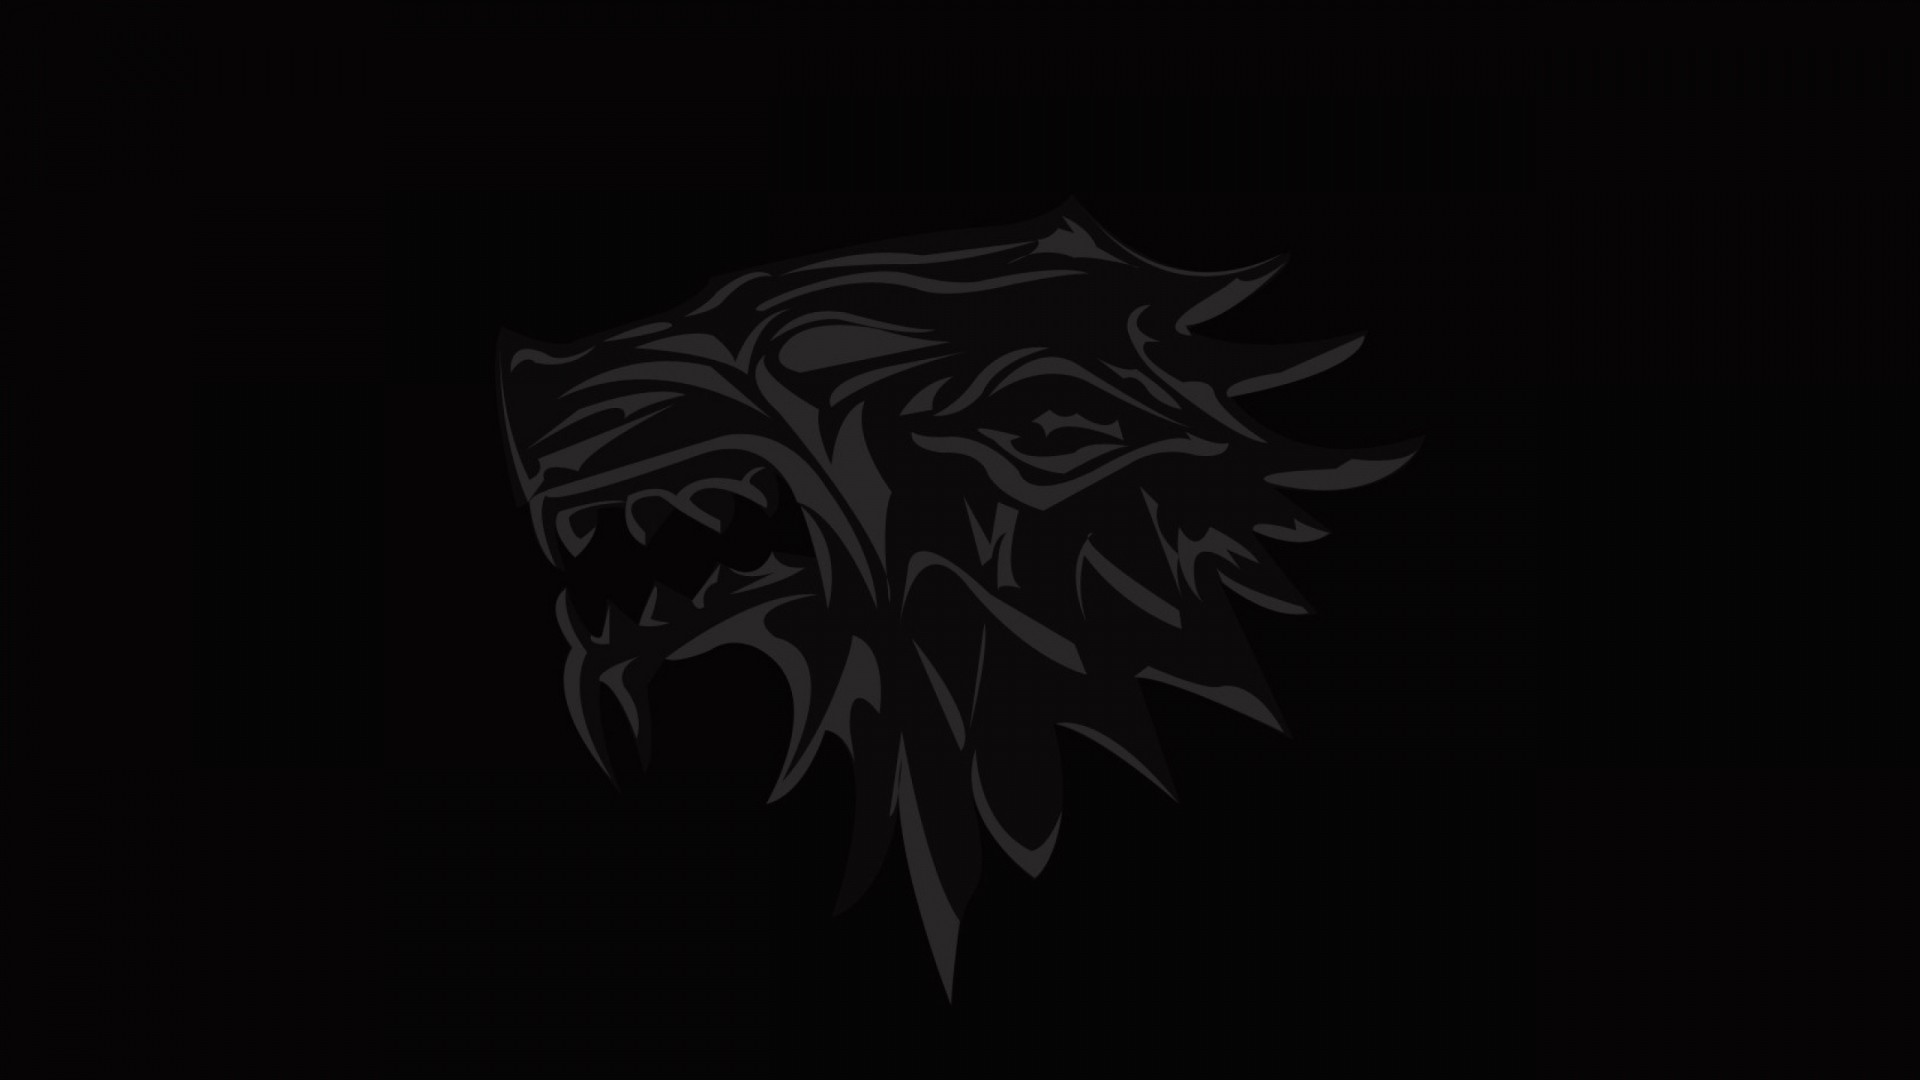 Wallpaper house of stark, game of thrones, logo, emblem, wolf